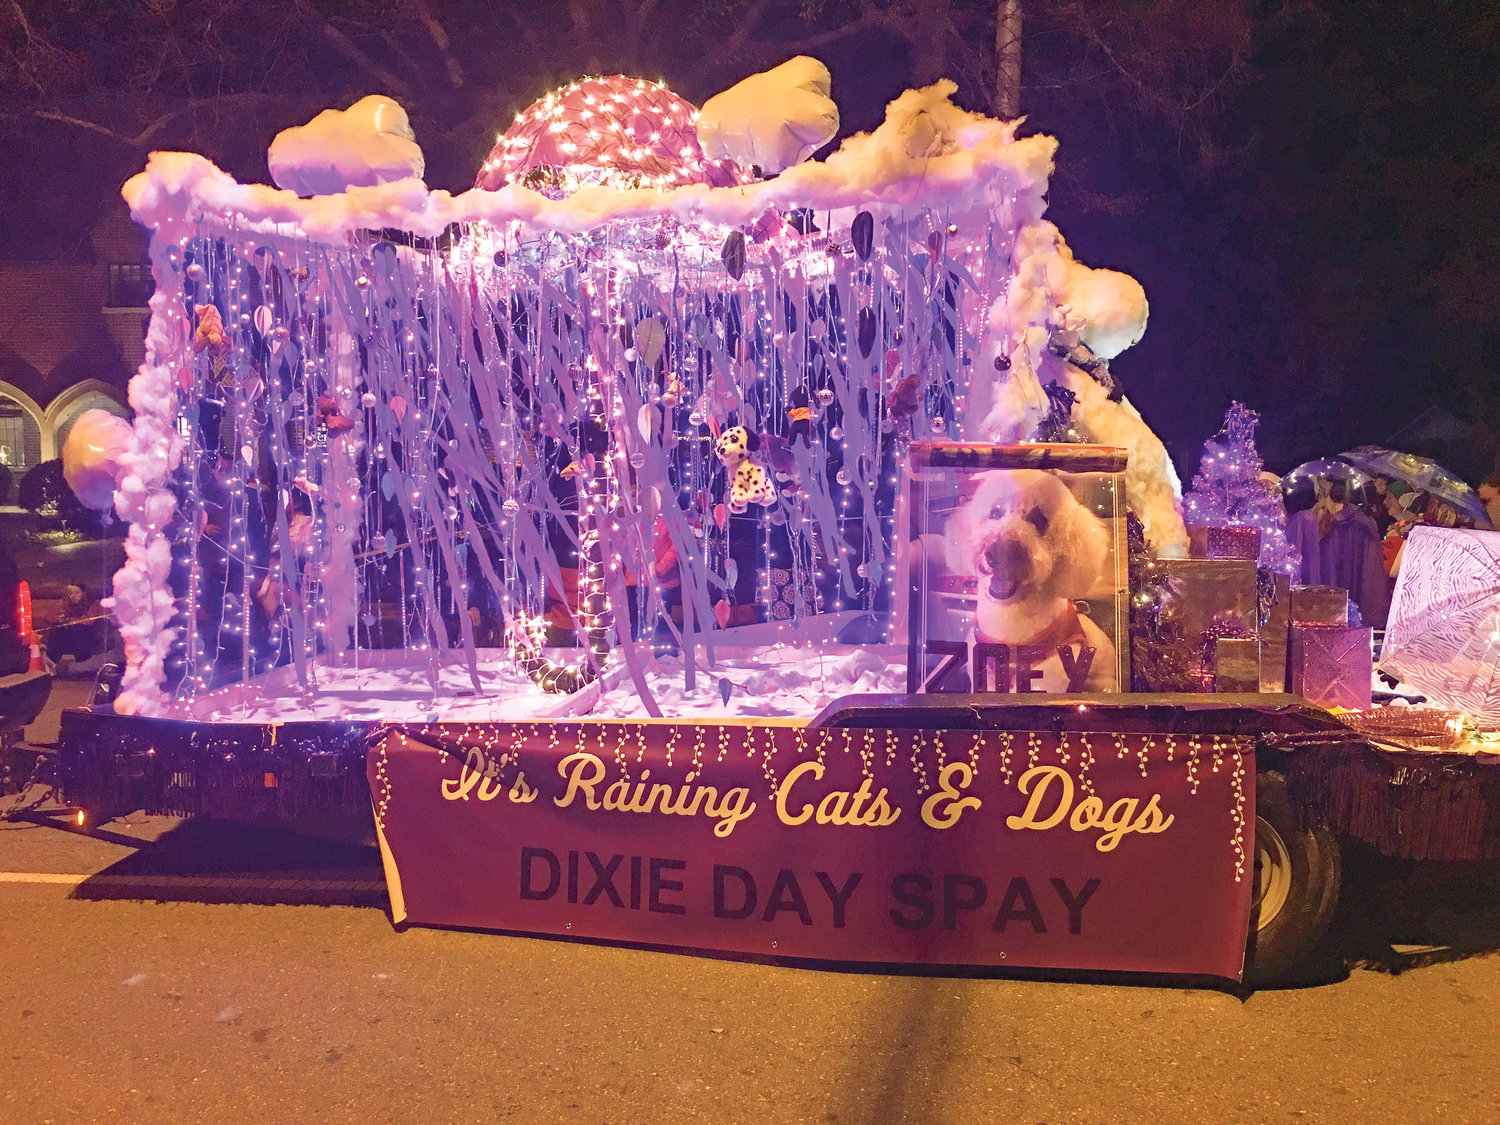 DIXIE DAY SPAY was the winner in the Civic Non-Profit category for the 2018 MainStreet Christmas Parade.